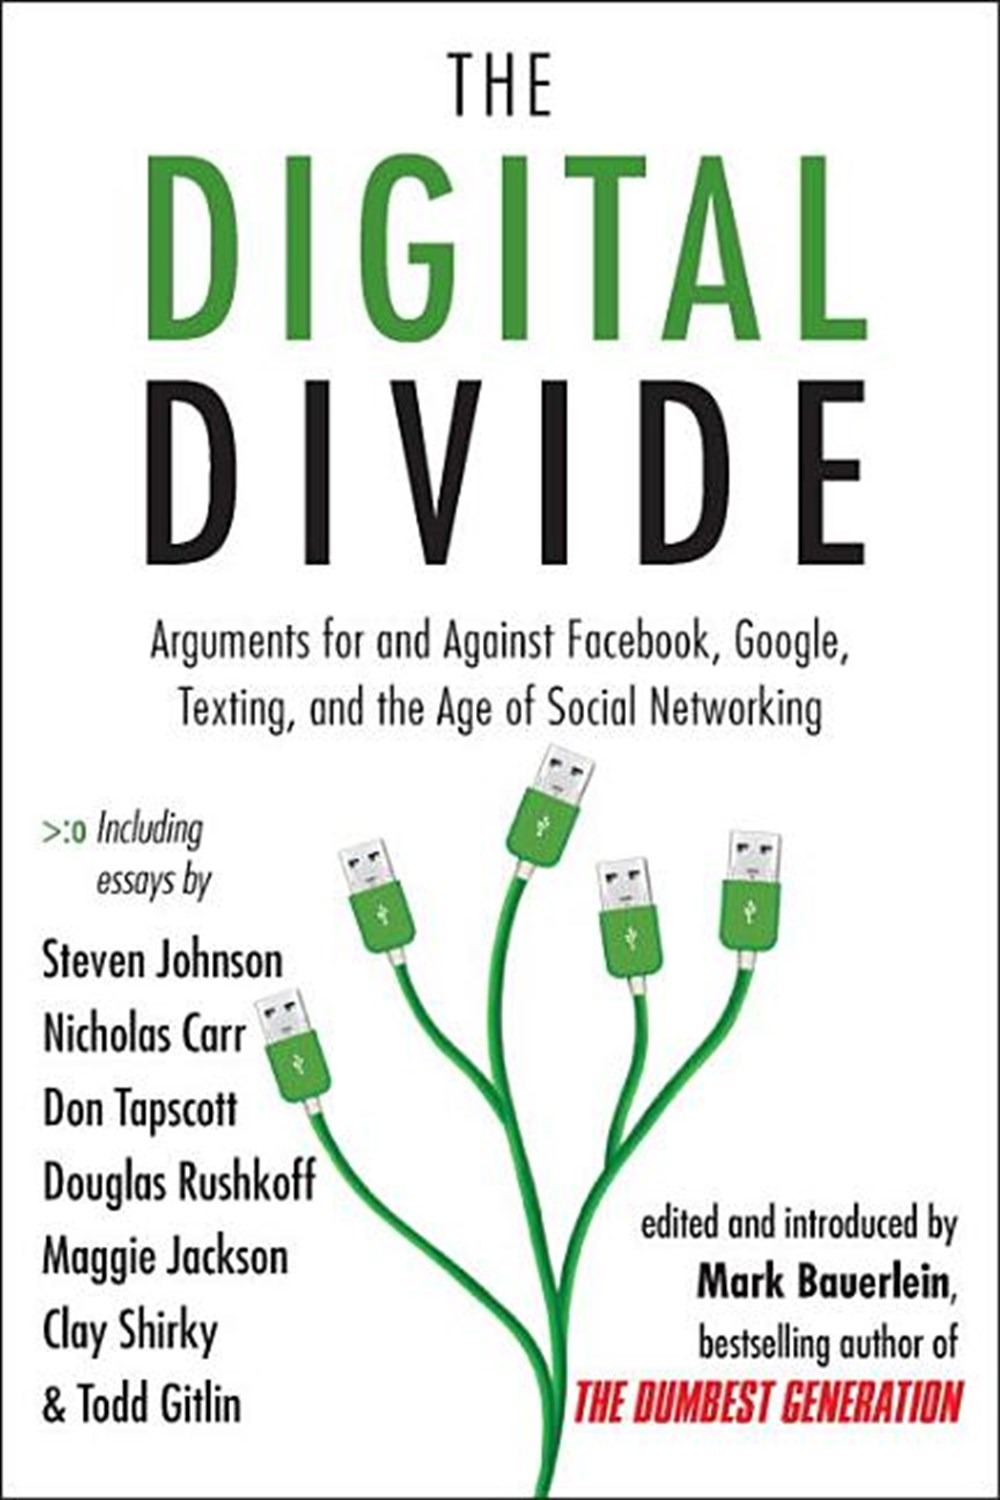 Digital Divide Arguments for and Against Facebook, Google, Texting, and the Age of Social Networking